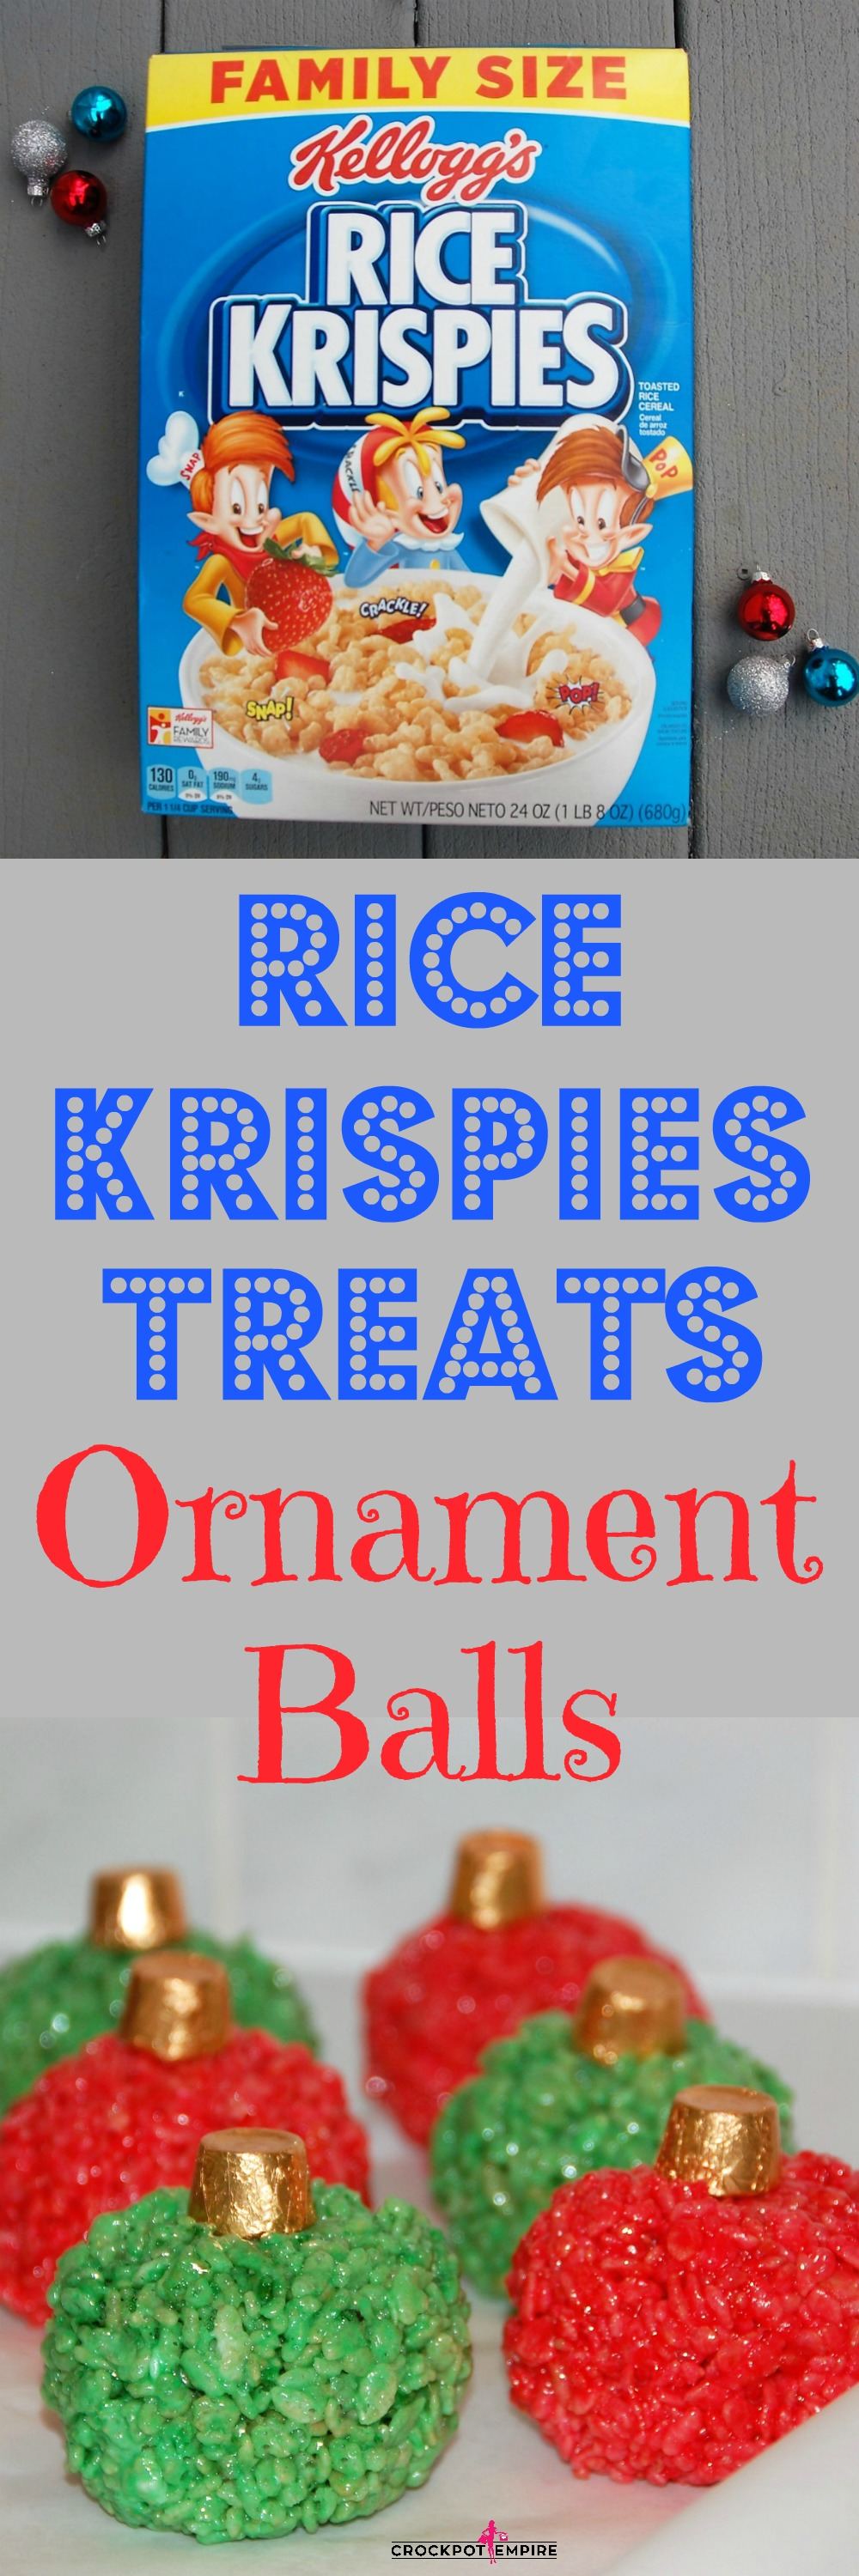 Hero Image Rice Krispies Treats Ornament Balls